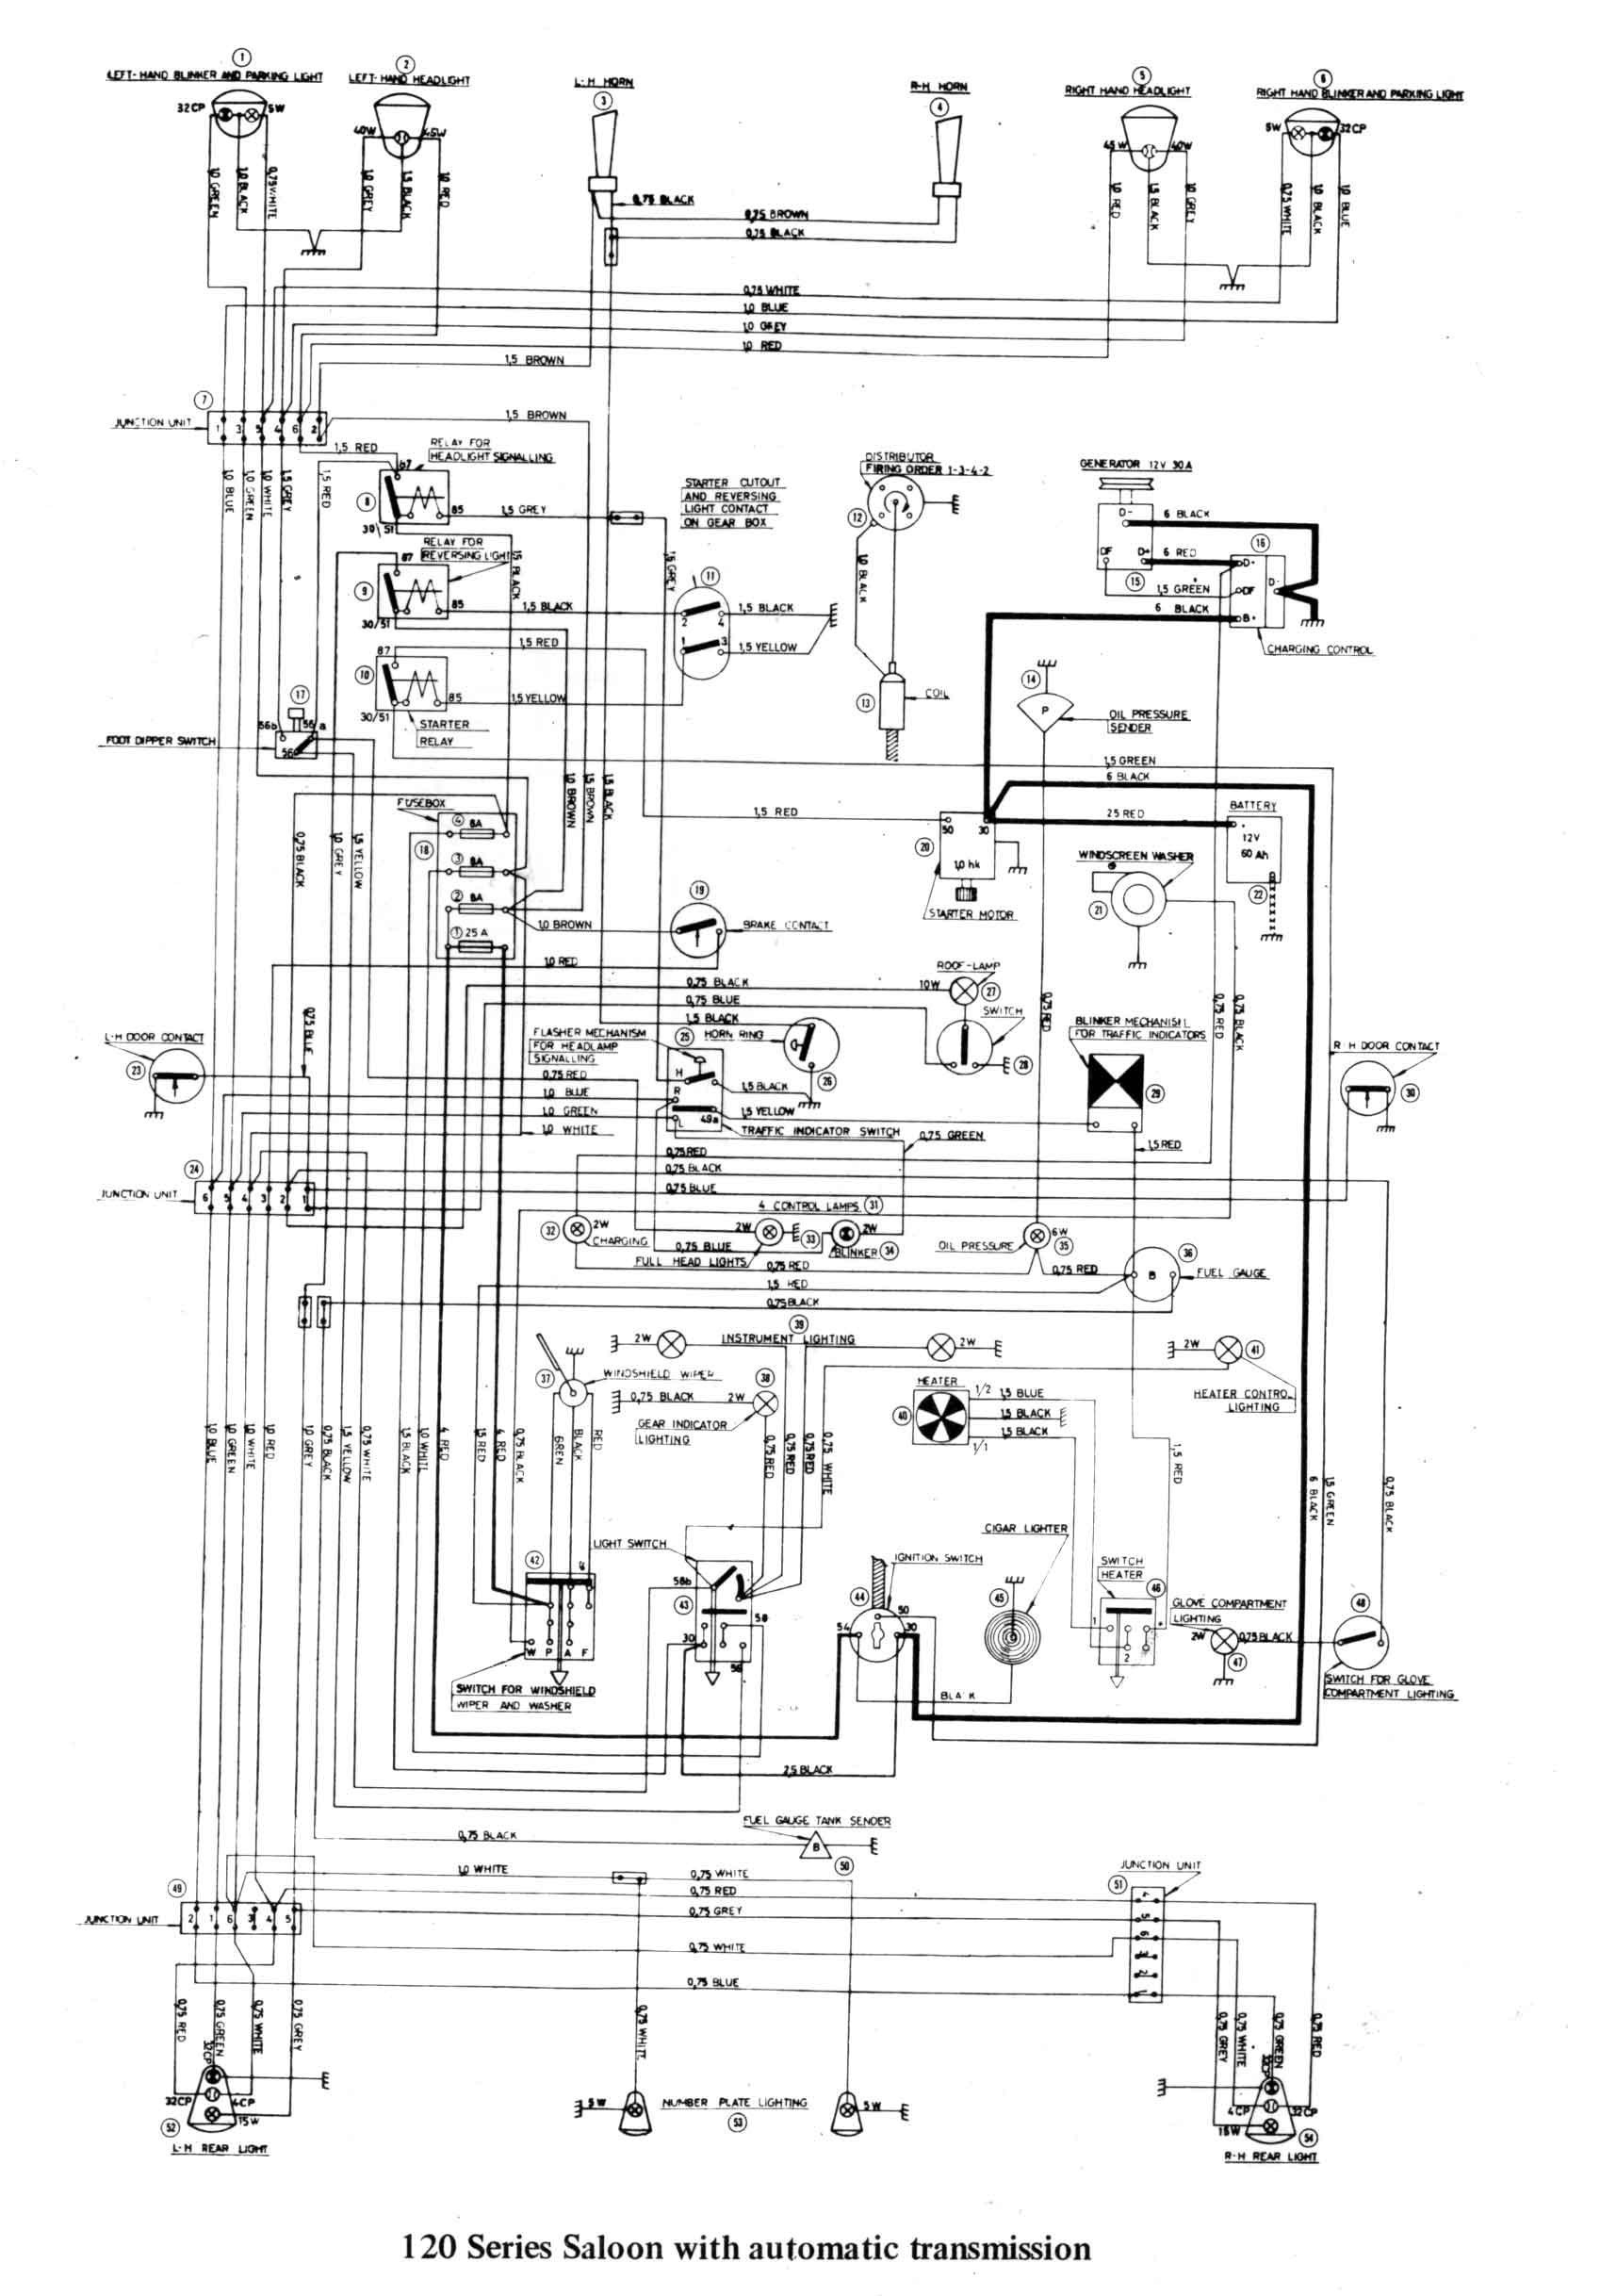 1955 Chevy Turn Signal Wiring Diagram Library Miata Generator Chevrolet Diagrams Of Schematic